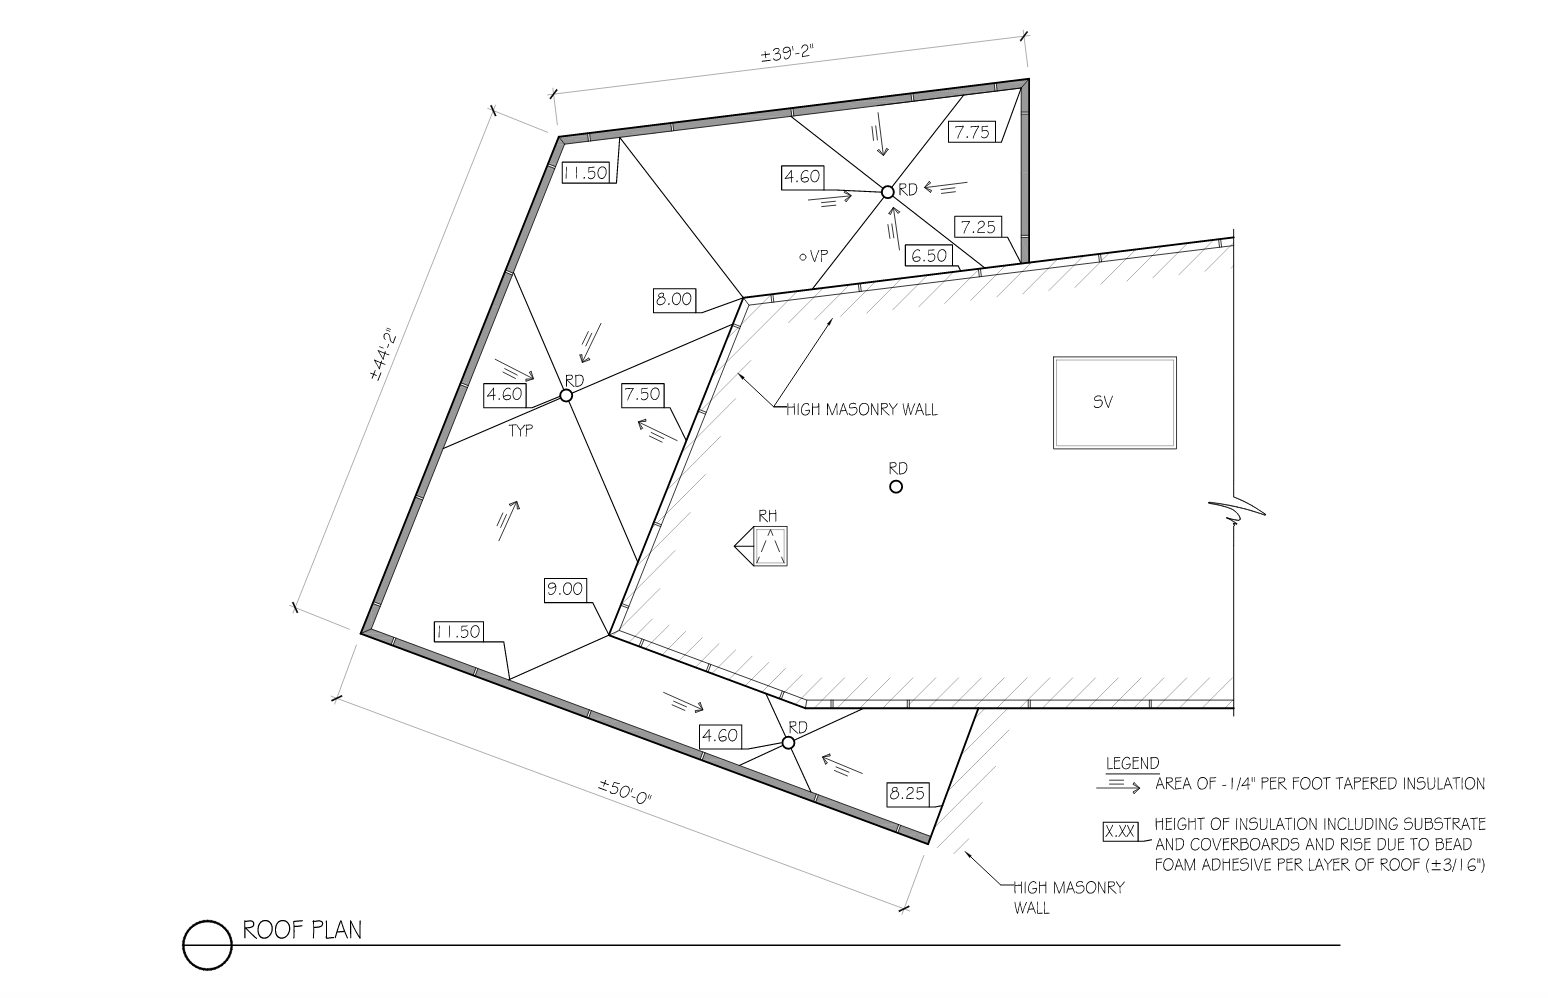 DETAIL 4: This roof plan (with the insulation heights noted) illustrates how insulation—especially tapered insulation—can rise on a wall.